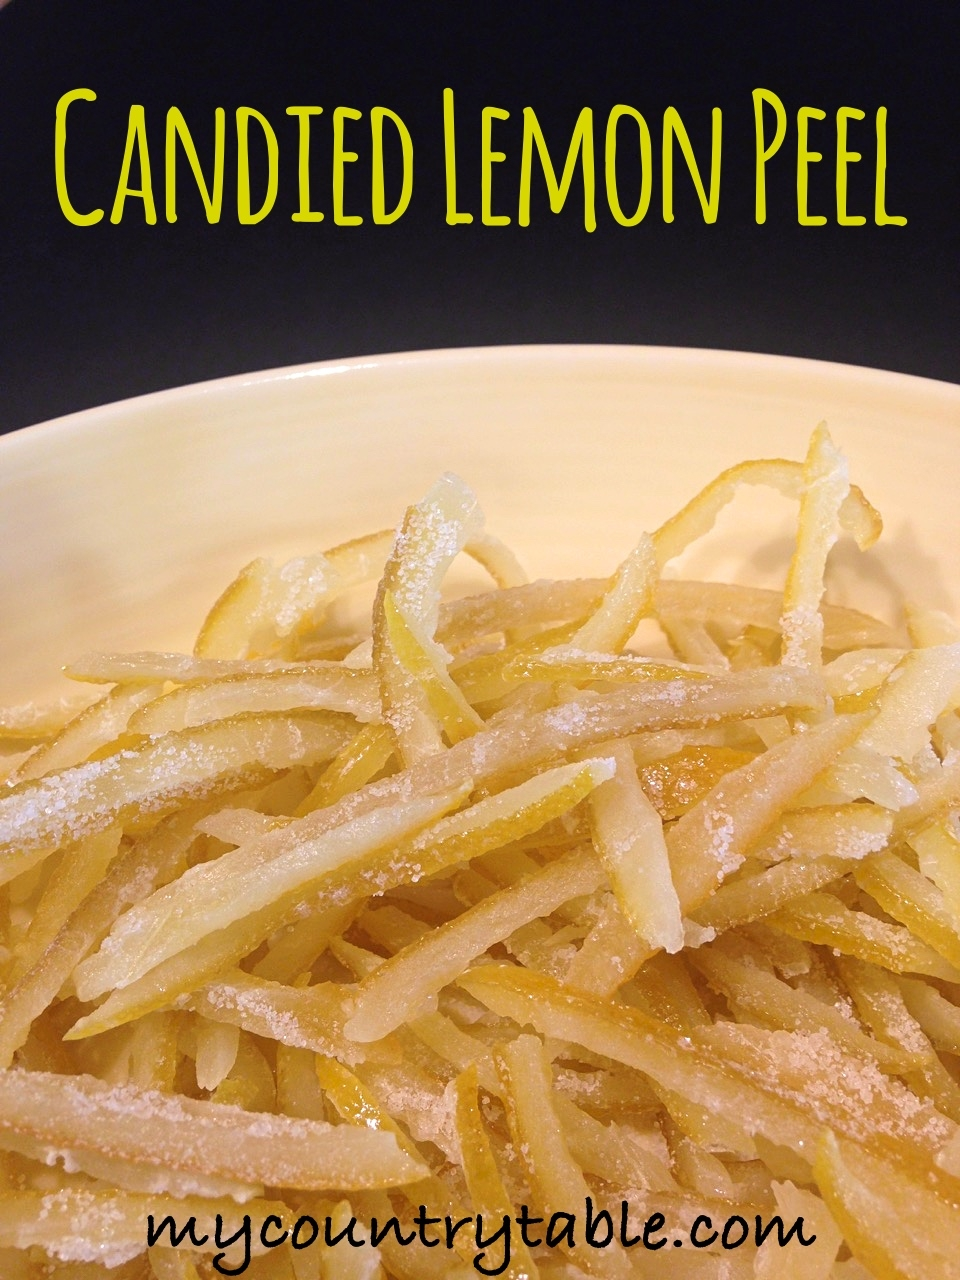 Candied Lemon Peel